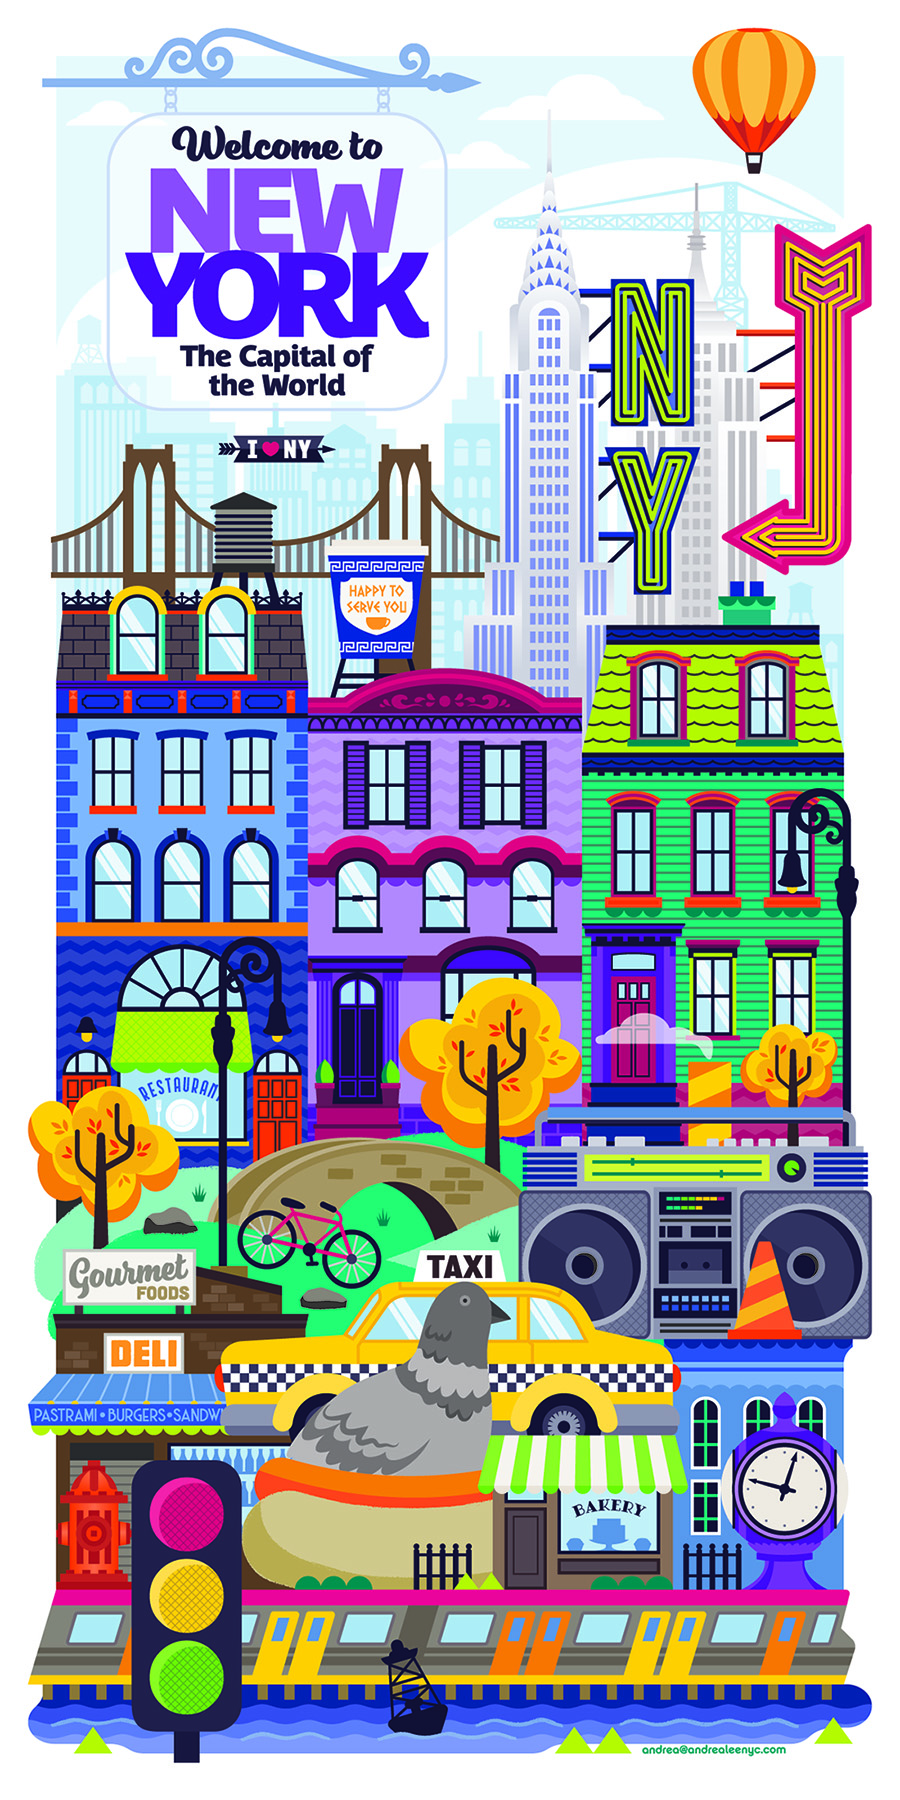 NYC guidebook illustrated cover